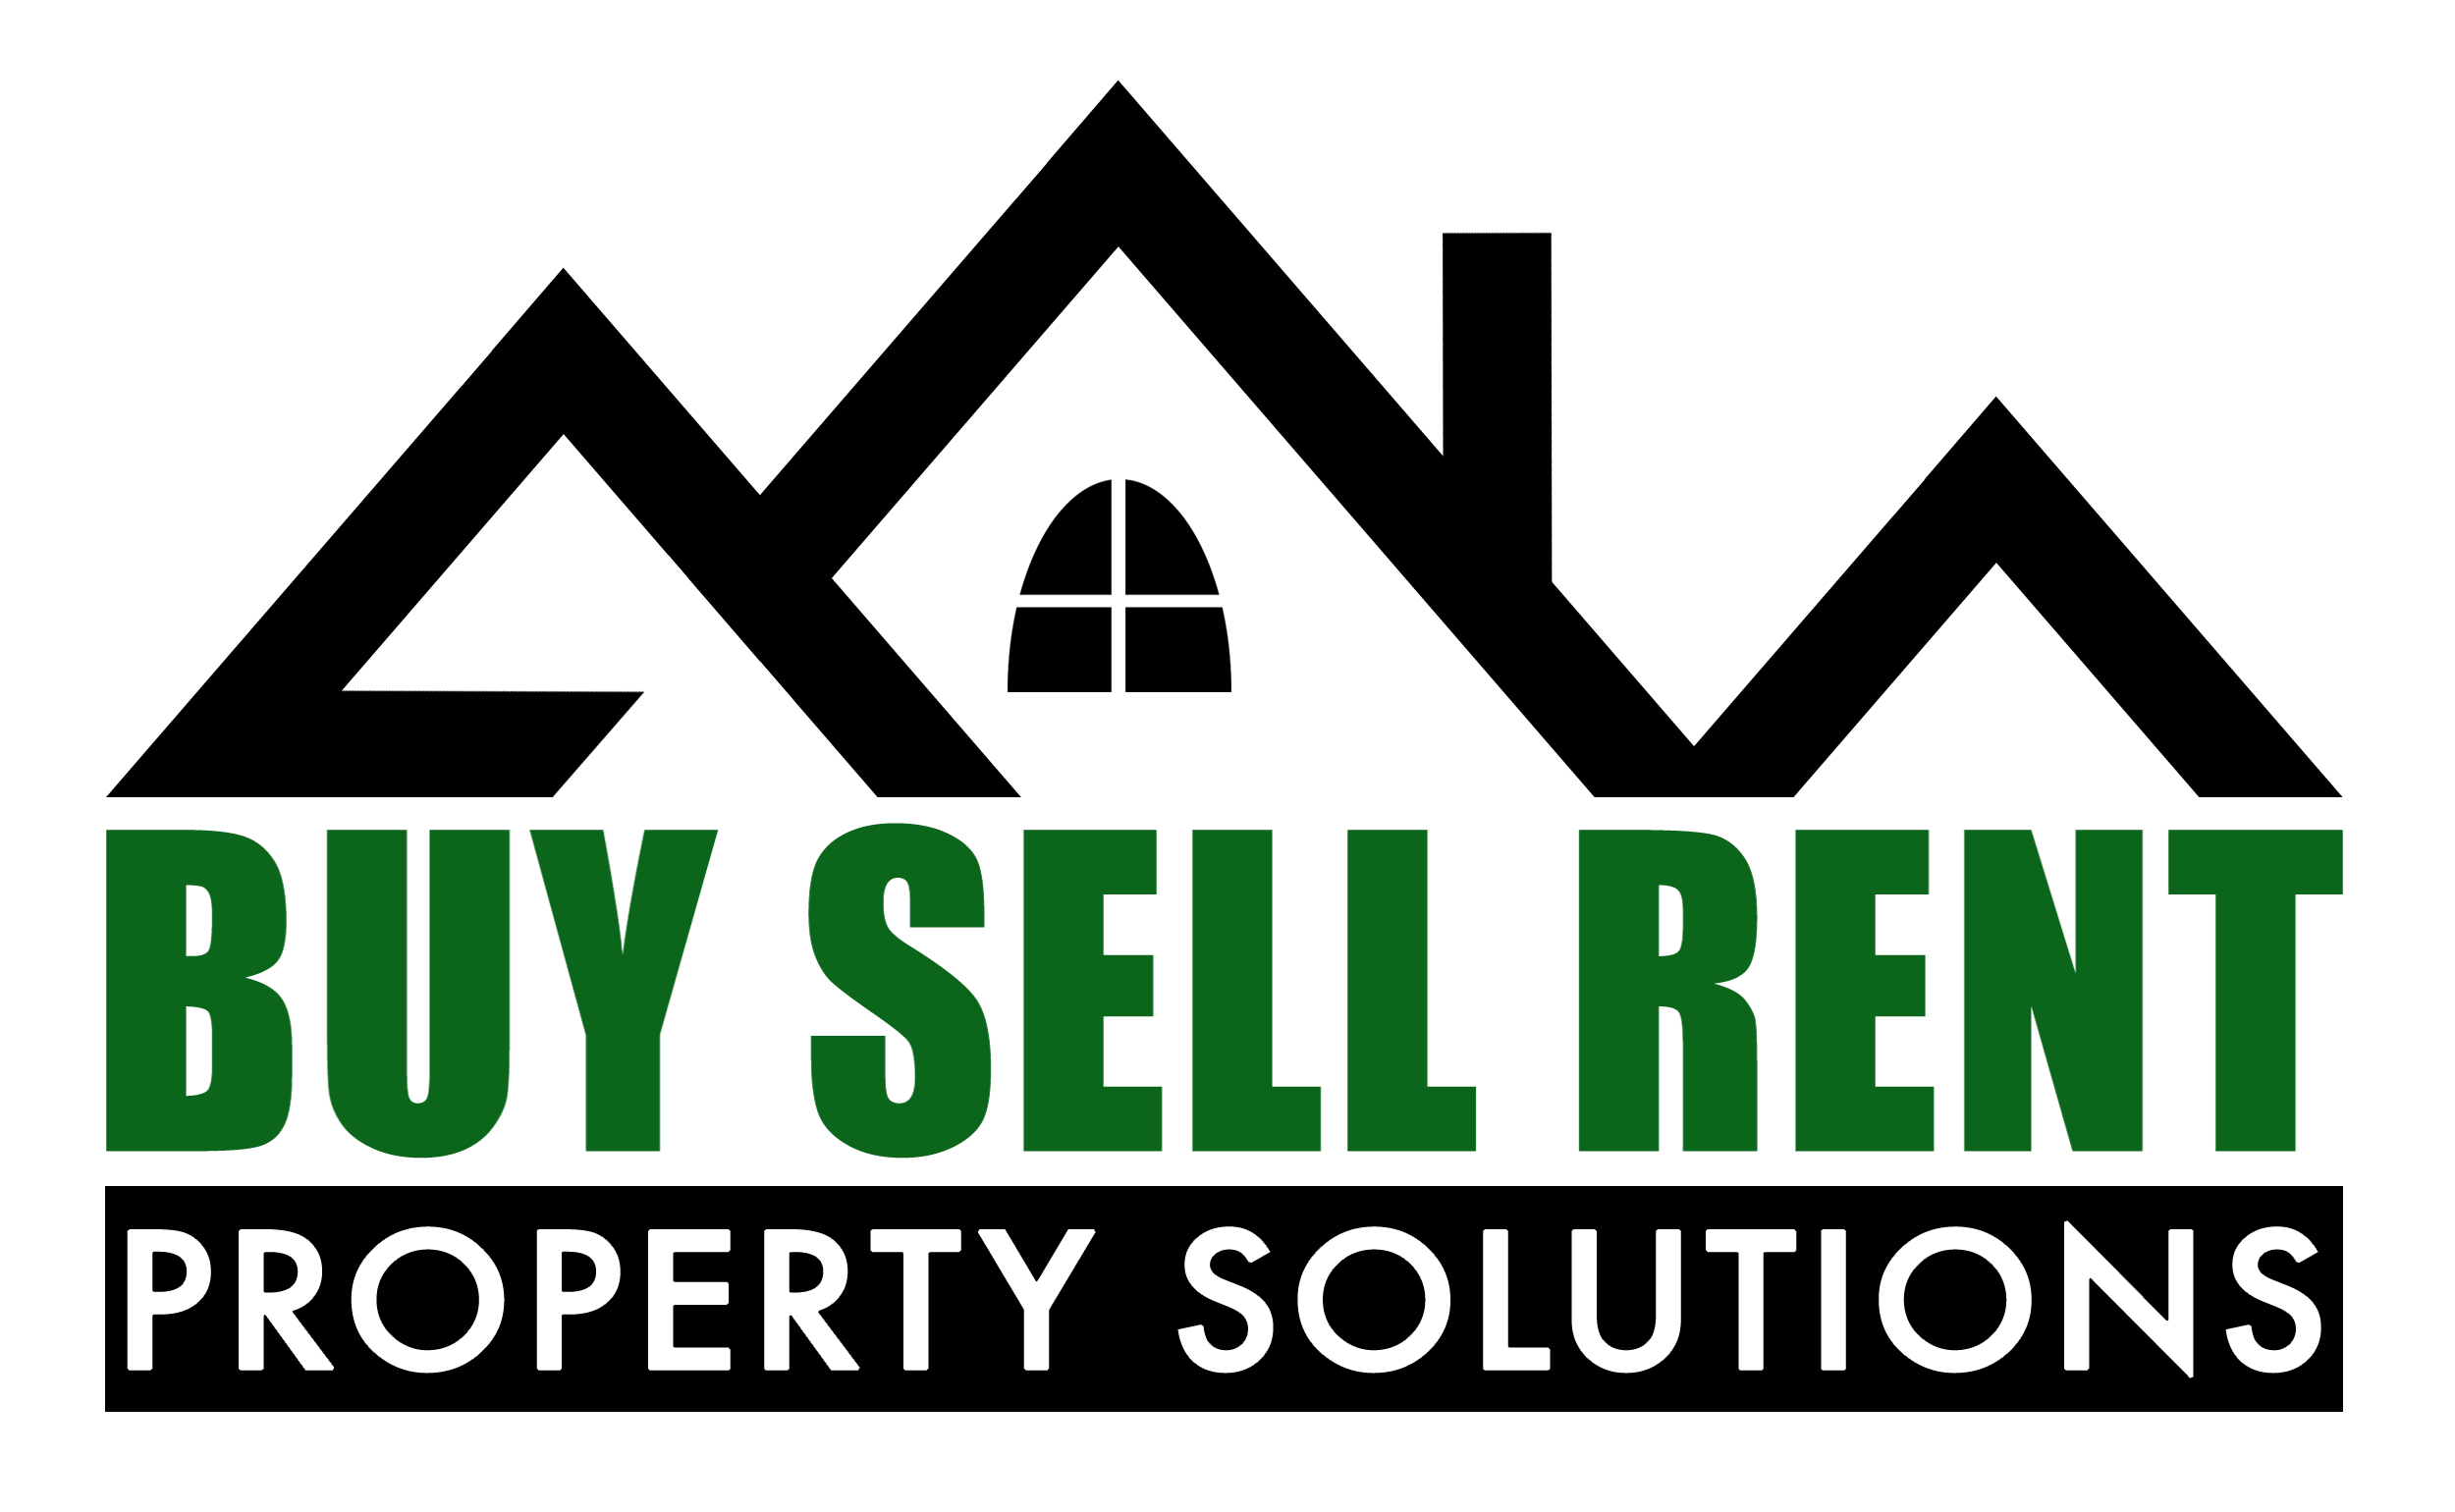 BUY-SELL-RENT-PROPERTY-SOLUTIONS-LOGO